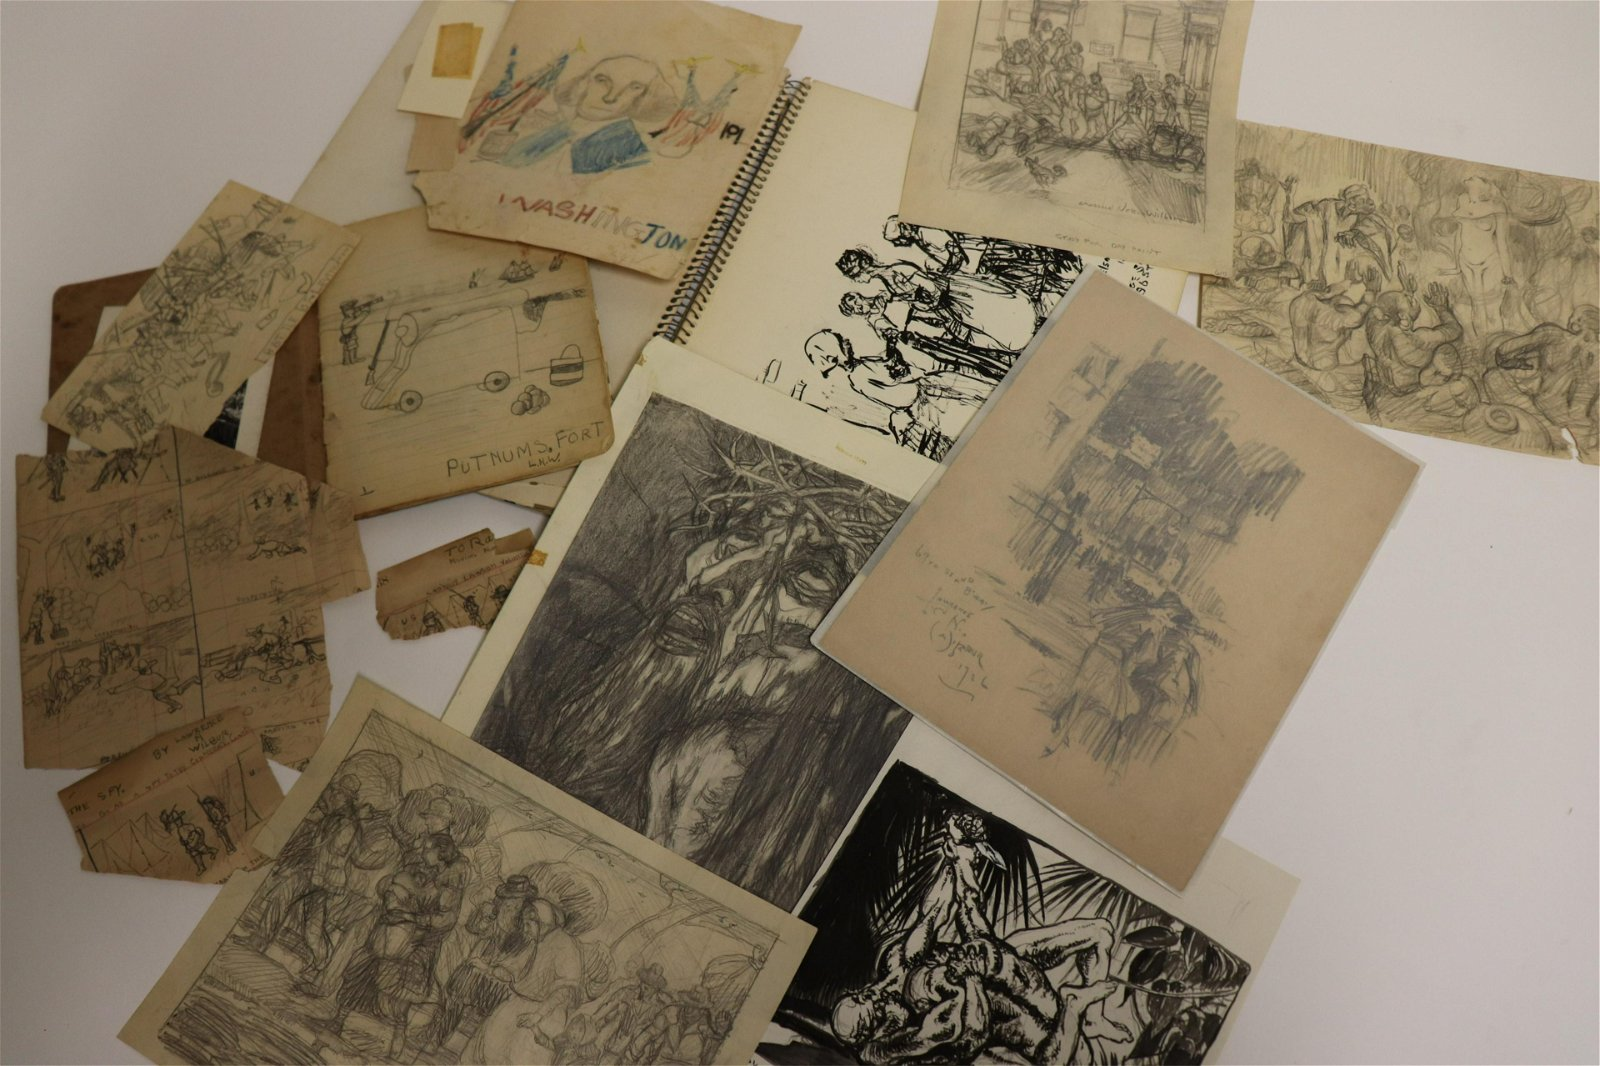 Lawrence Wilbur, Lot of sketches, etc.